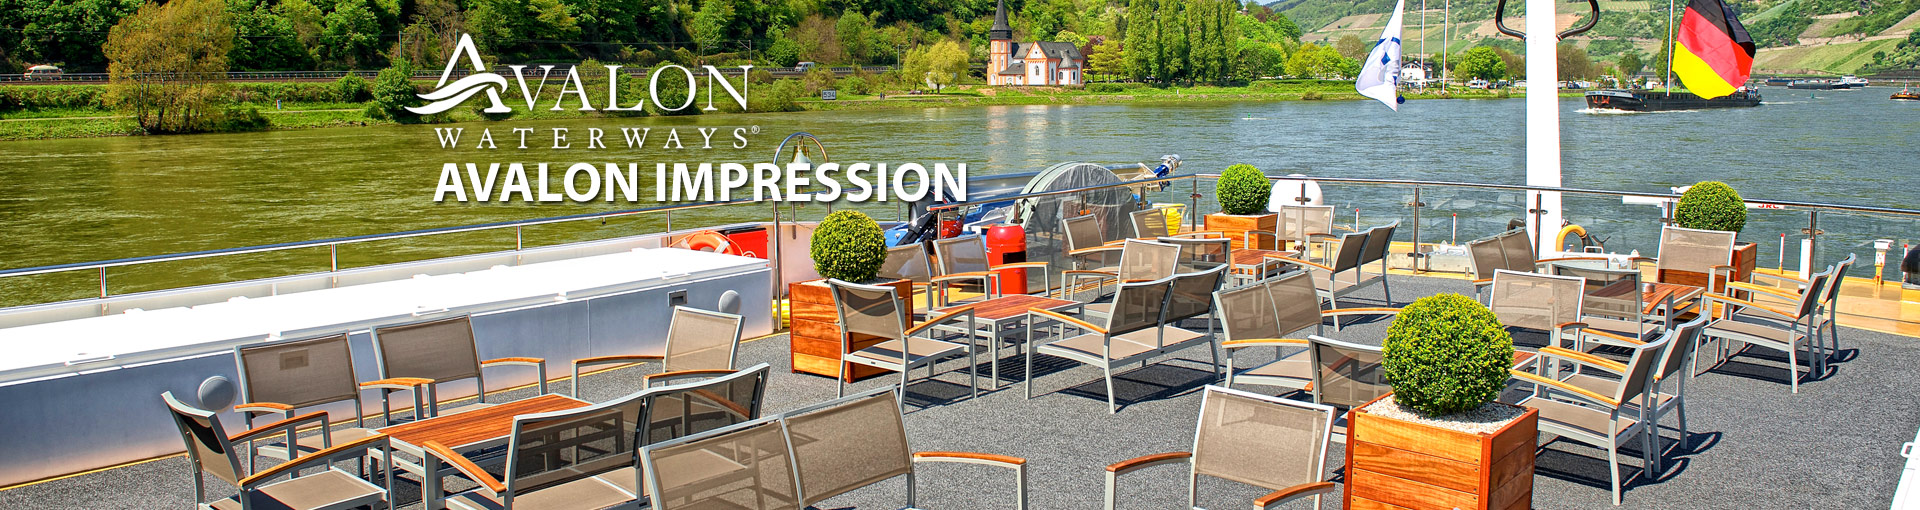 Avalon Waterways Impression river cruise ship